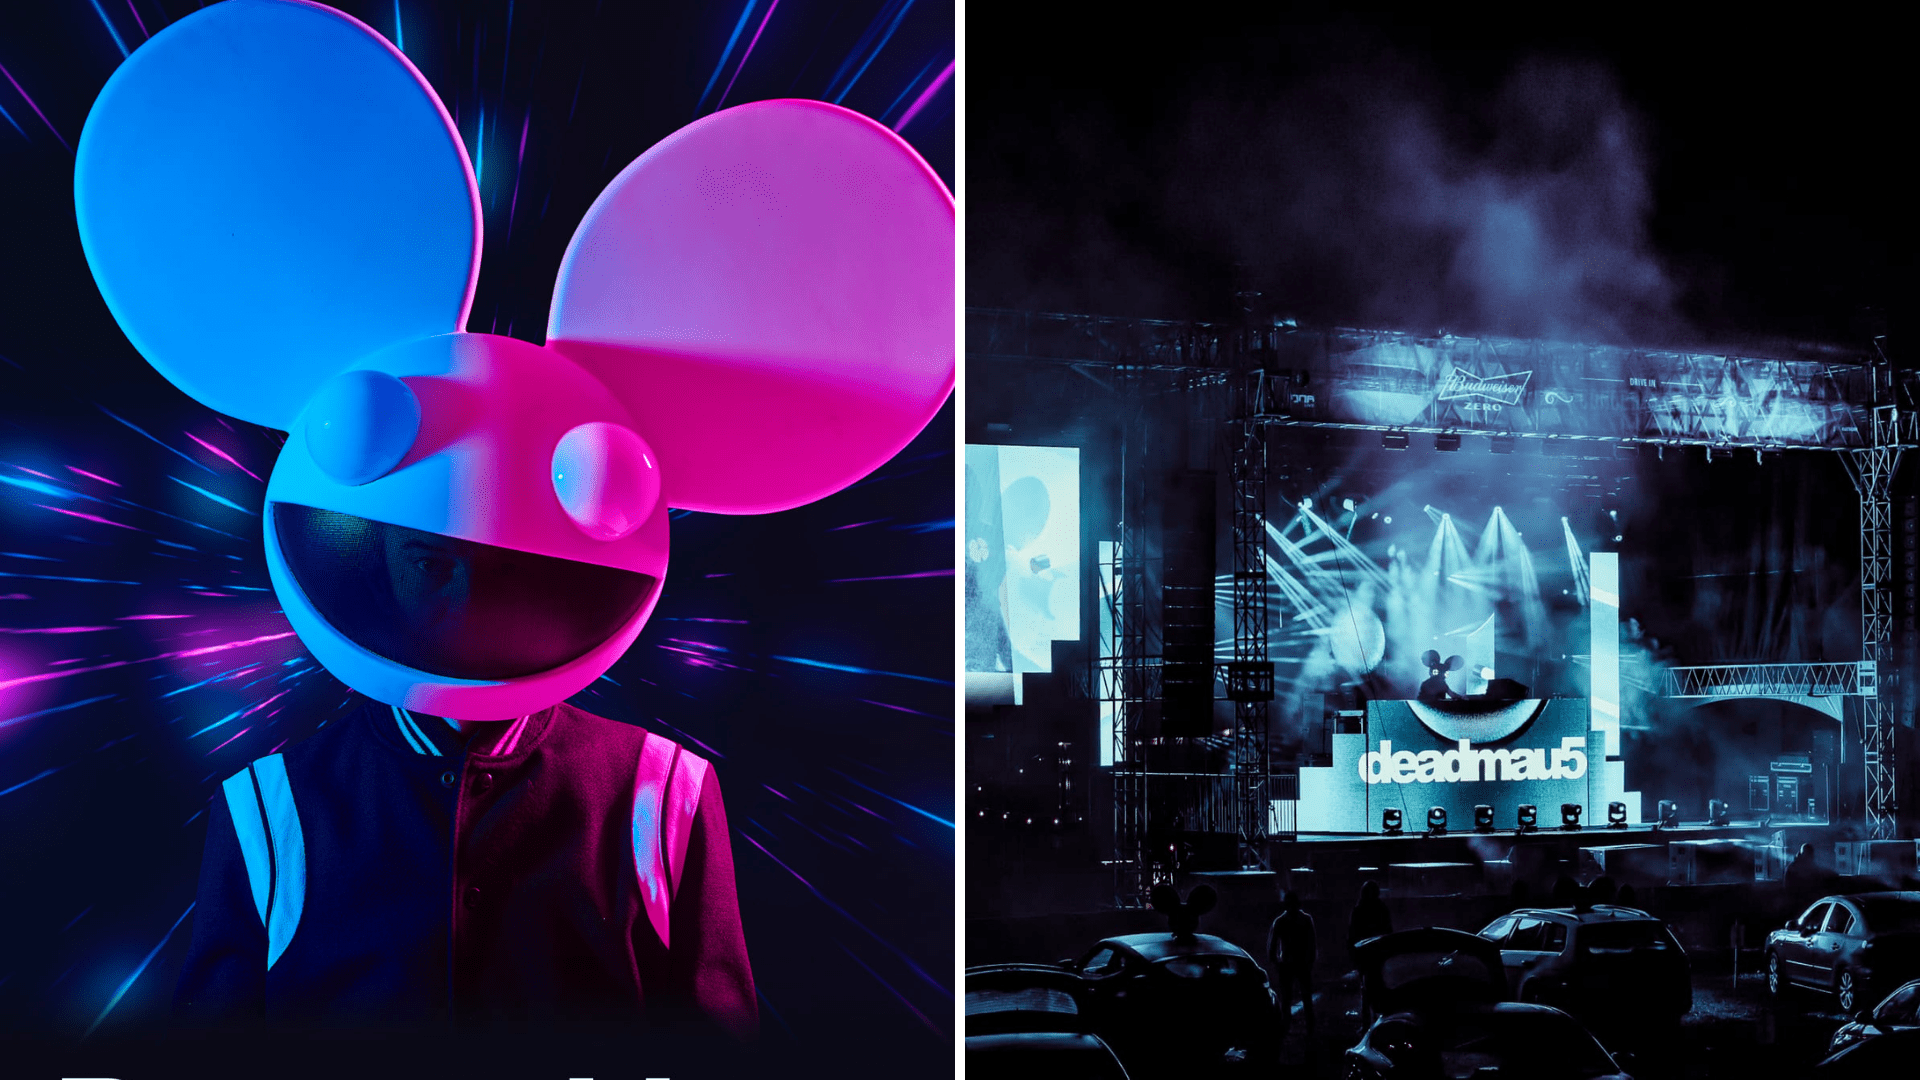 deadmau5 drive-in event